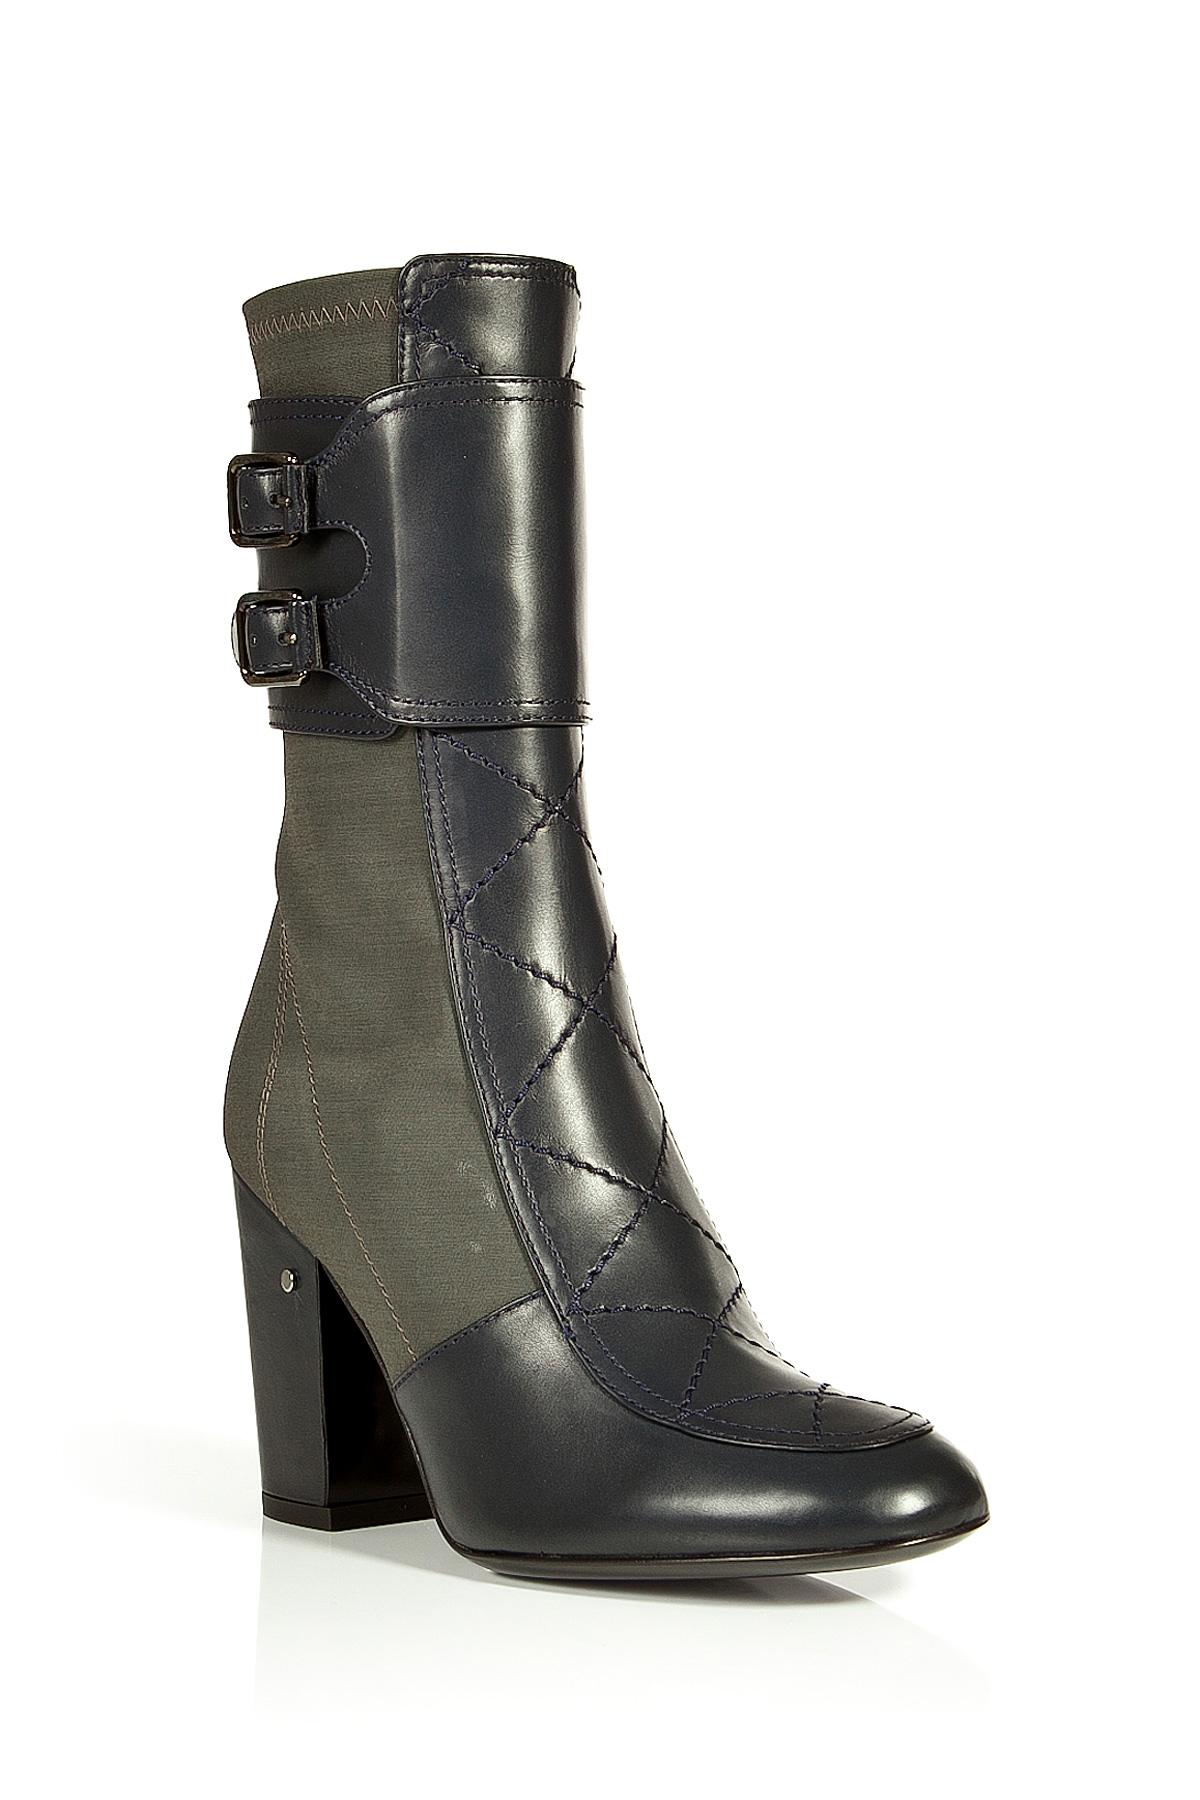 laurence dacade calf leather stretch crepe galice boots in